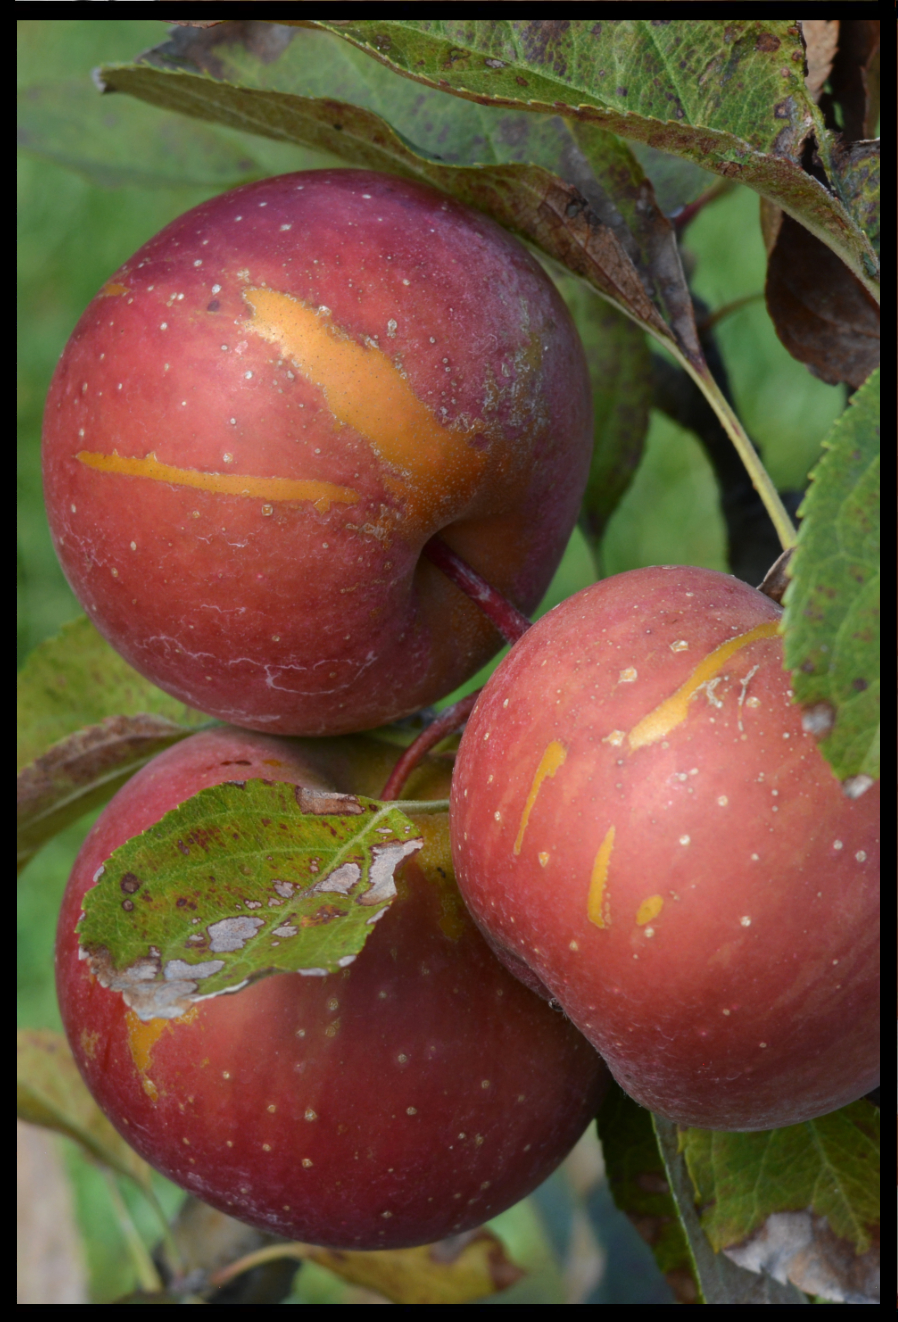 red apple with white spots and streaks of rough tan skin